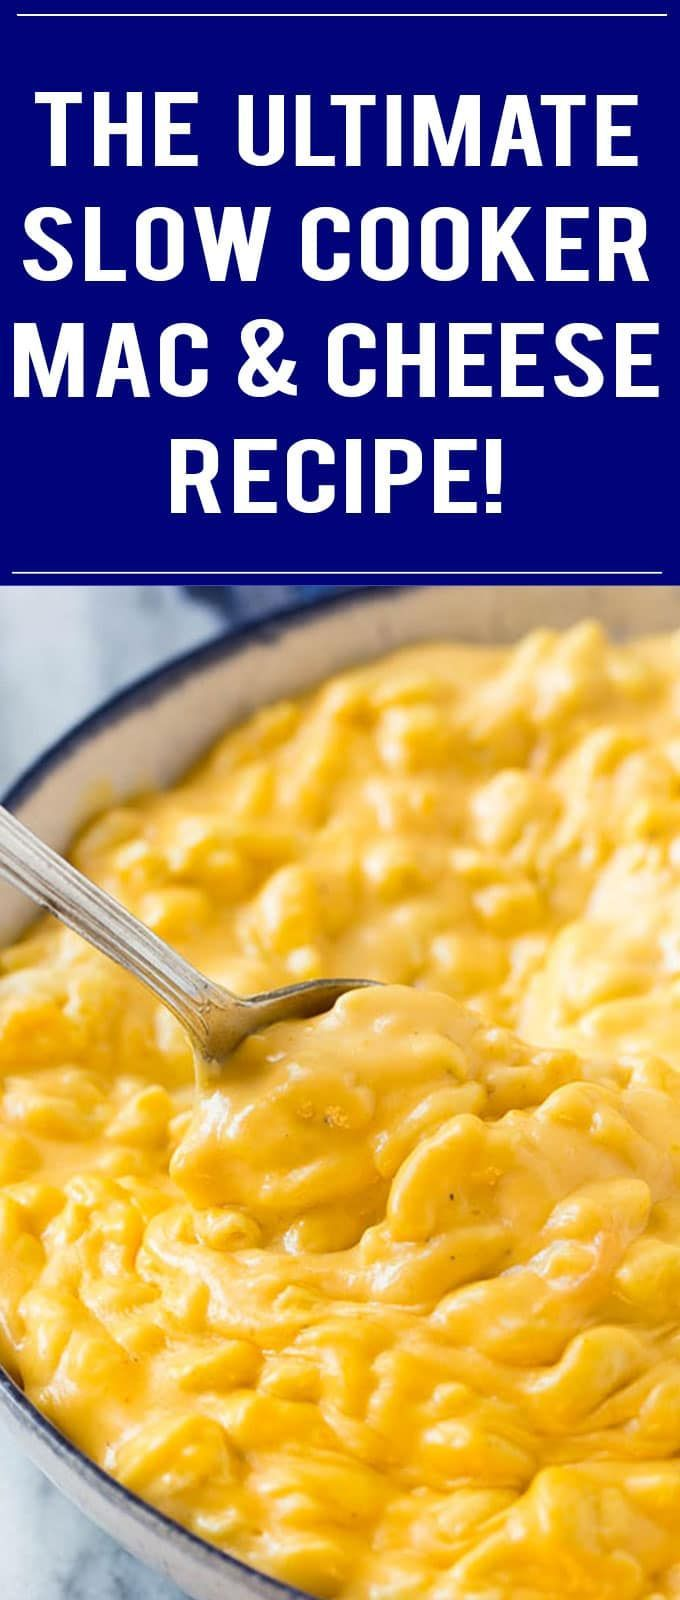 Slow Cooker Mac and Cheese Recipe | Easy Mac and Cheese | Macaroni and Cheese | Crock Pot Mac and Cheese